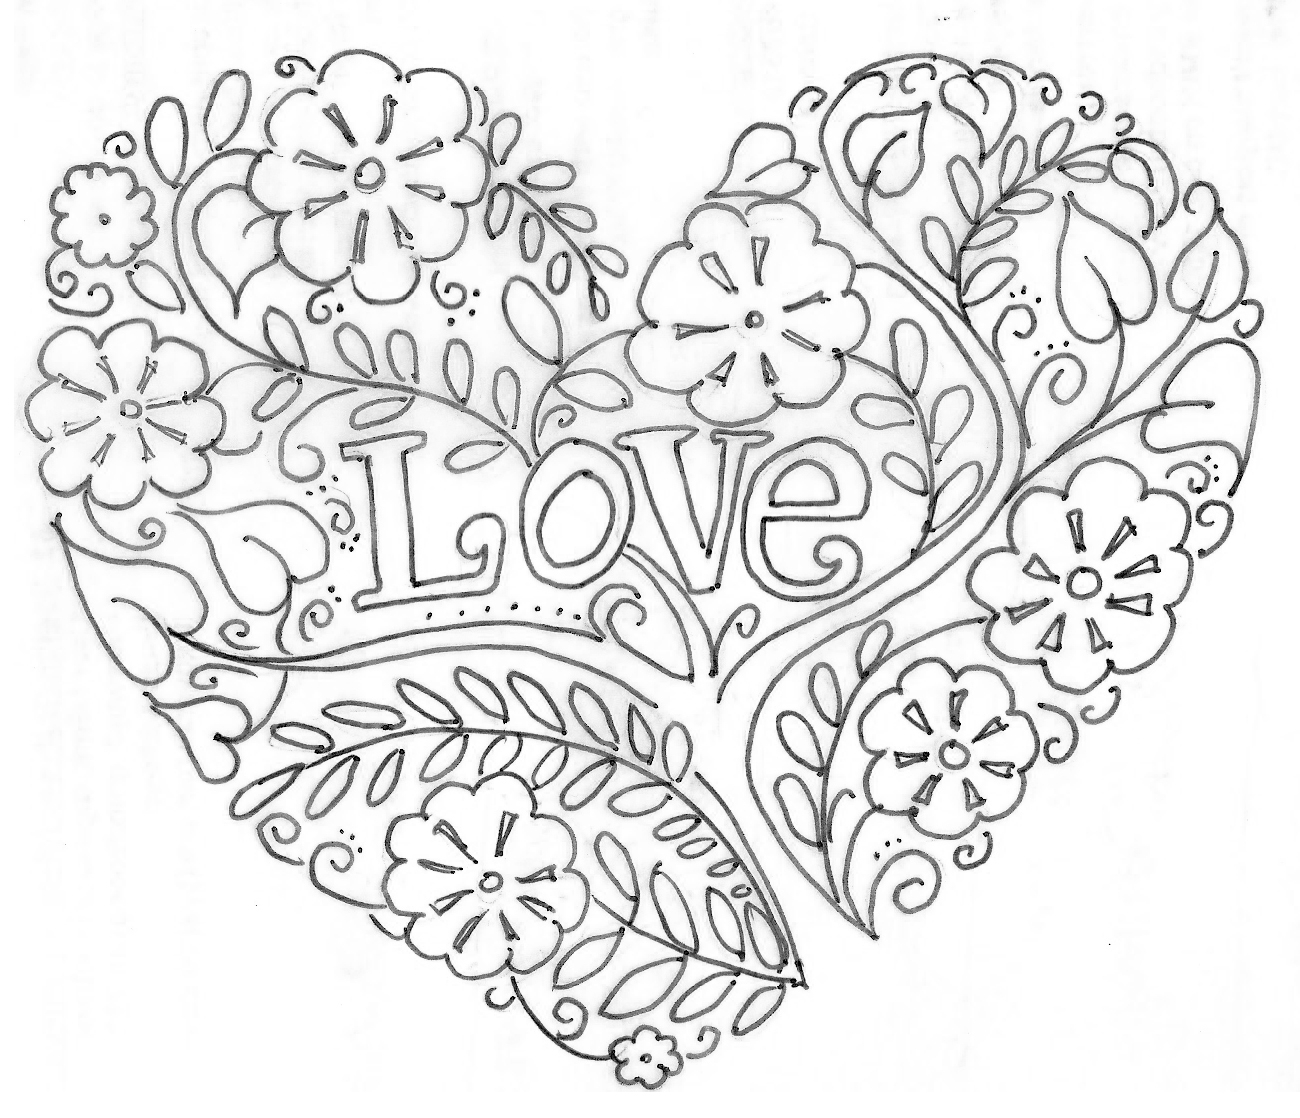 Printable Valentine S Day Coloring Pages My Craftily Ever after to Print Of I Love You Free Valentines S0189 Coloring Pages Printable Collection